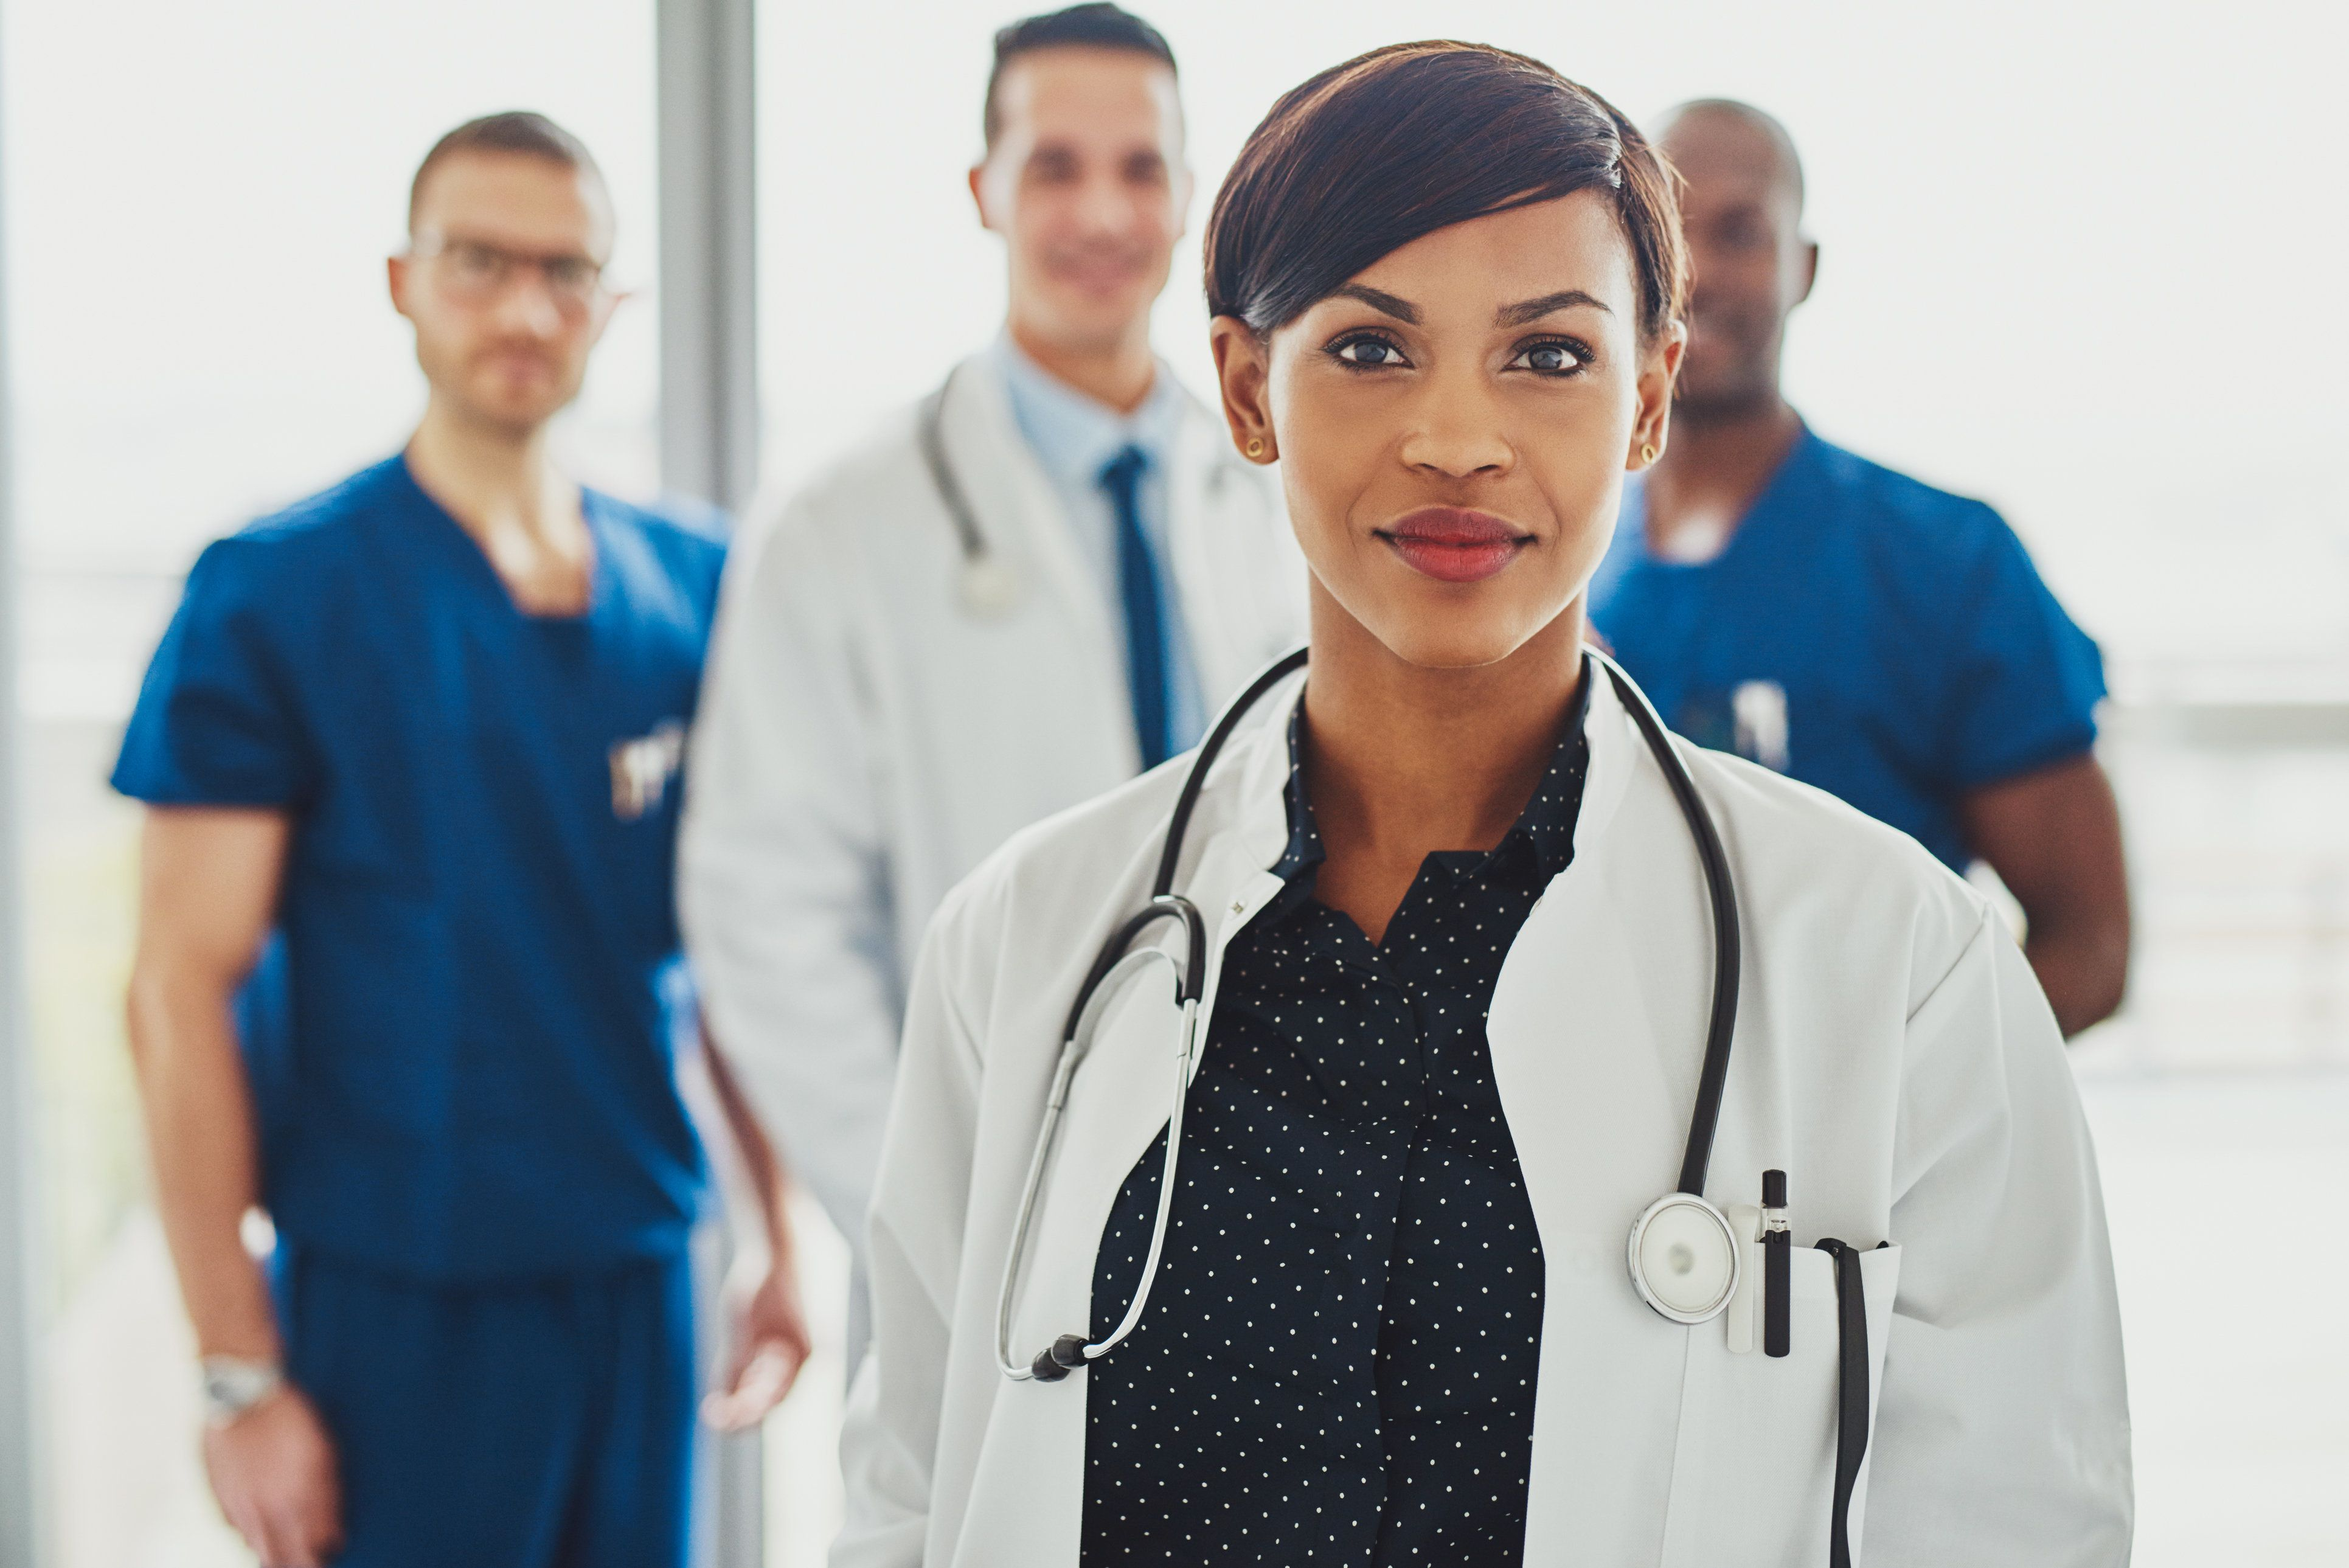 Female doctors outperformed their male counterparts on measures of 30-day readmission and 30-day mortality rates, according t